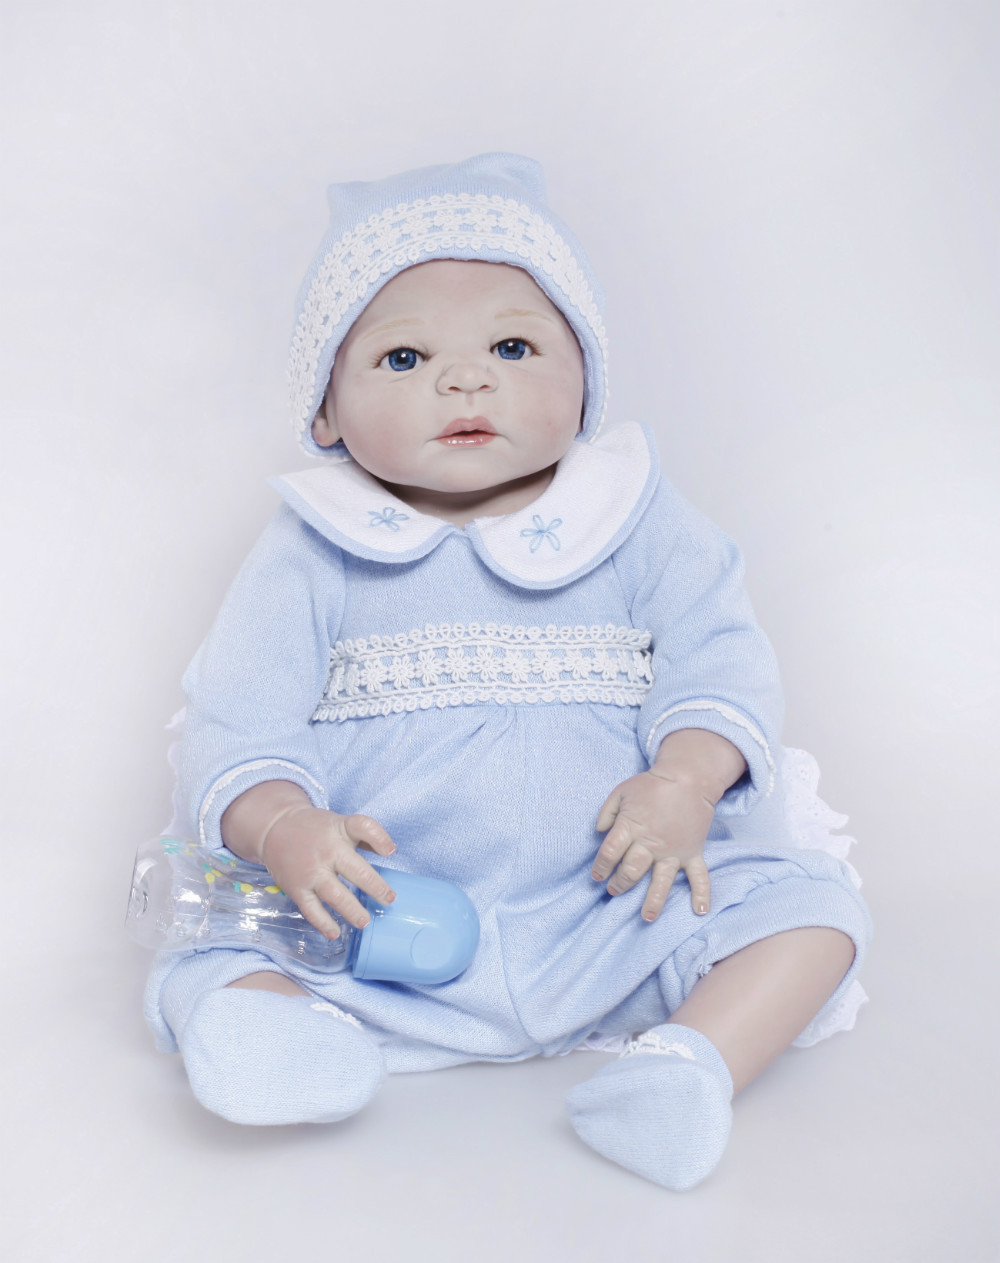 2015 Sales Promotion Full Vinyl Reborn Doll Lifelike Real Touch Baby dolls For children Best Gift 50-55cm Free shipping<br><br>Aliexpress